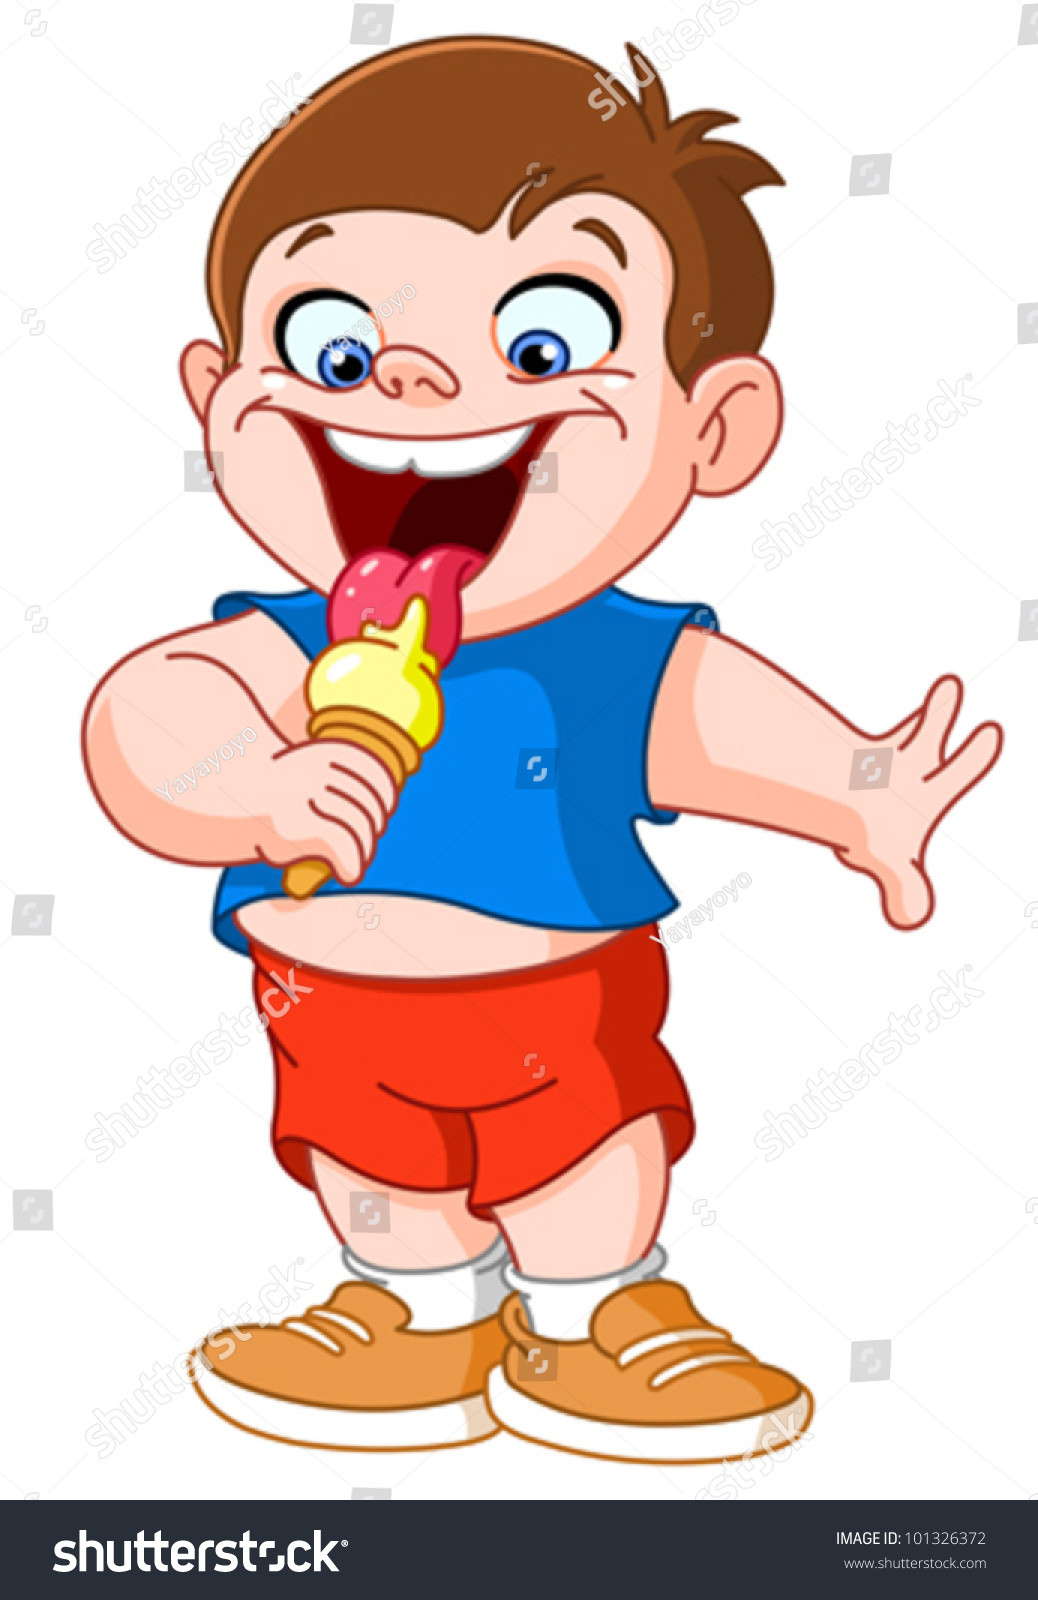 Image result for kid eating ice cream cartoon pics